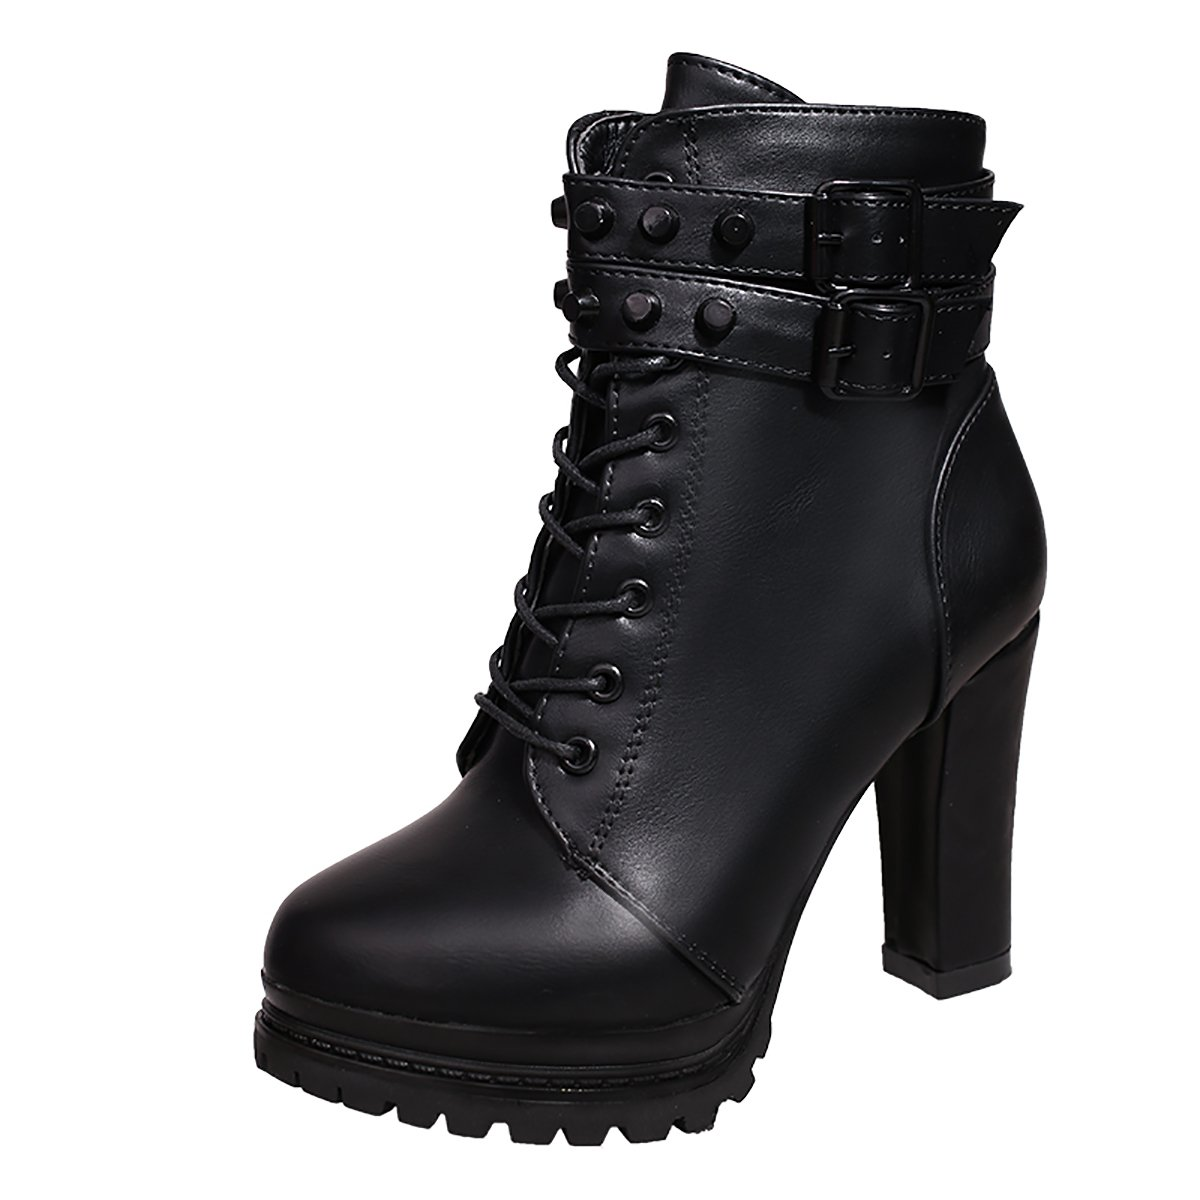 Inornever Women\u0027s Chunky High Heel Ankle Booties Fashion Buckle Platform PU  Military Combat Boots